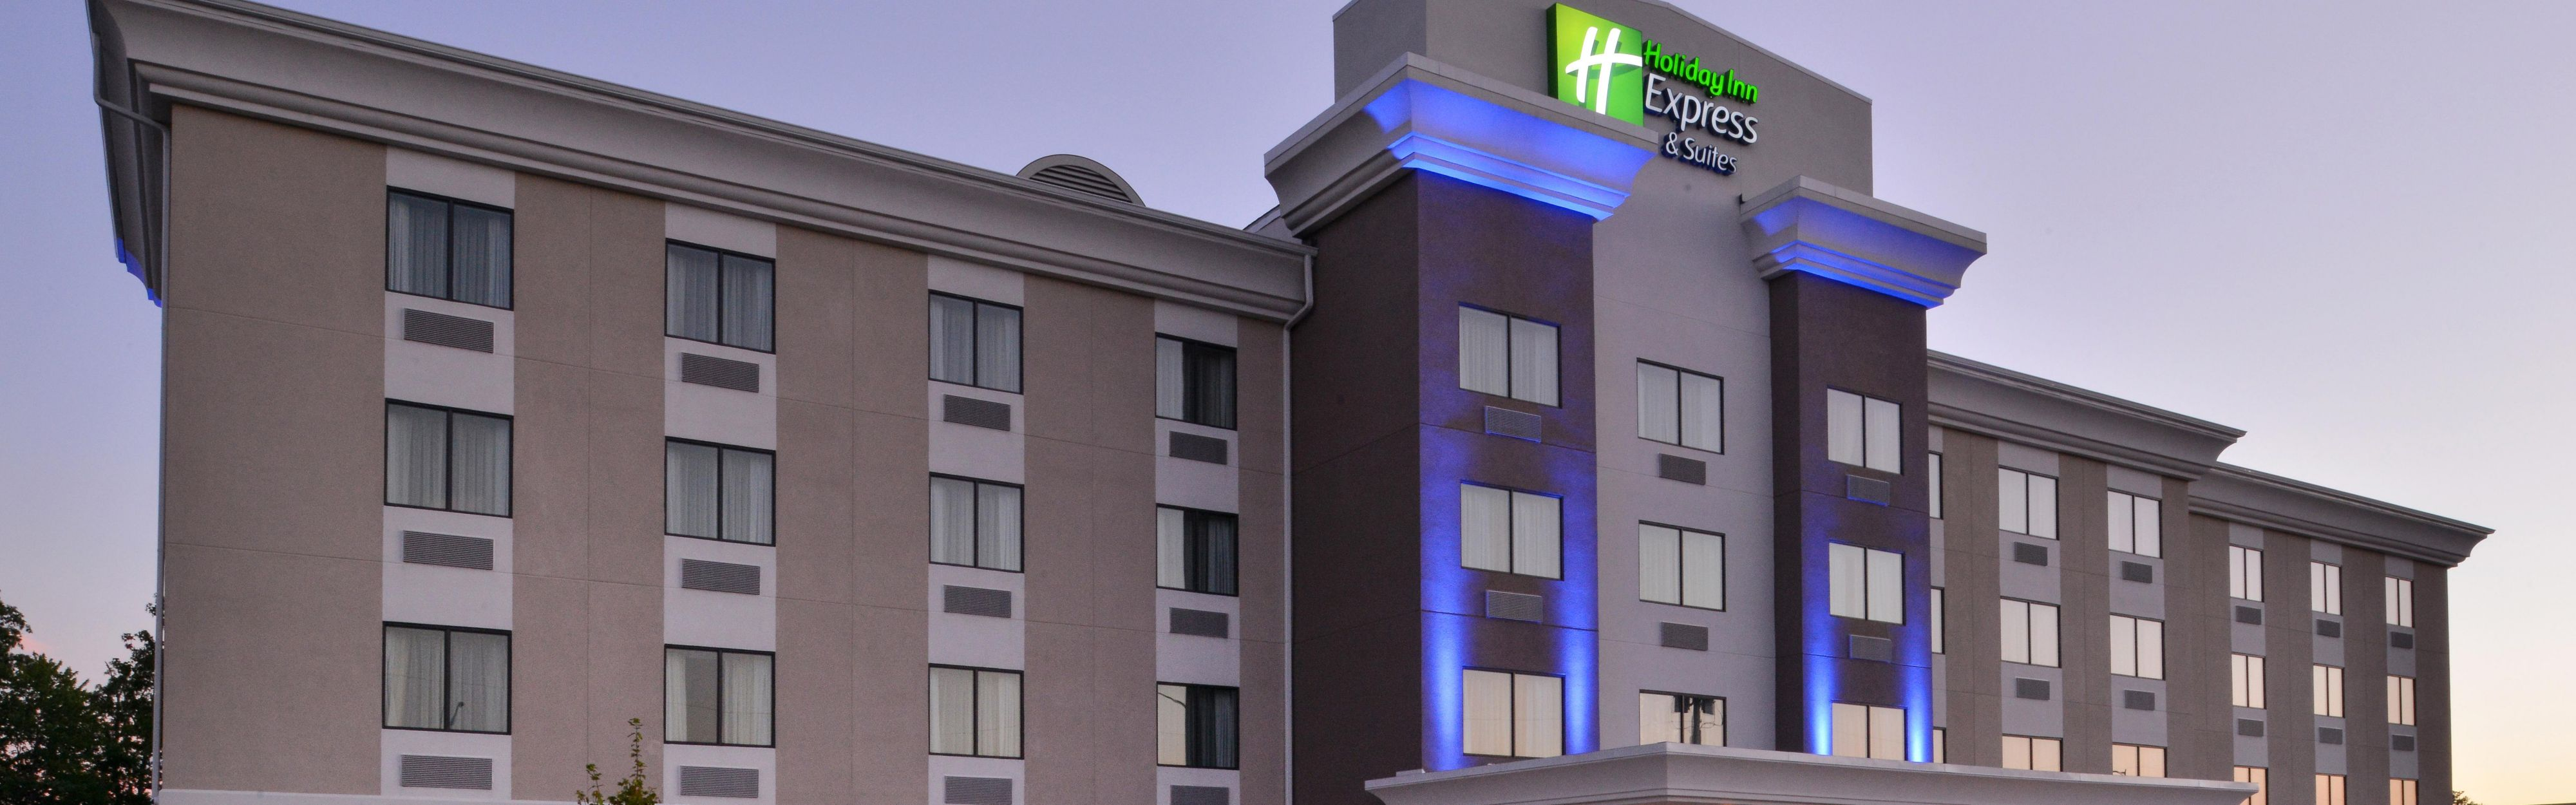 Holiday Inn Express & Suites West Ocean City image 0